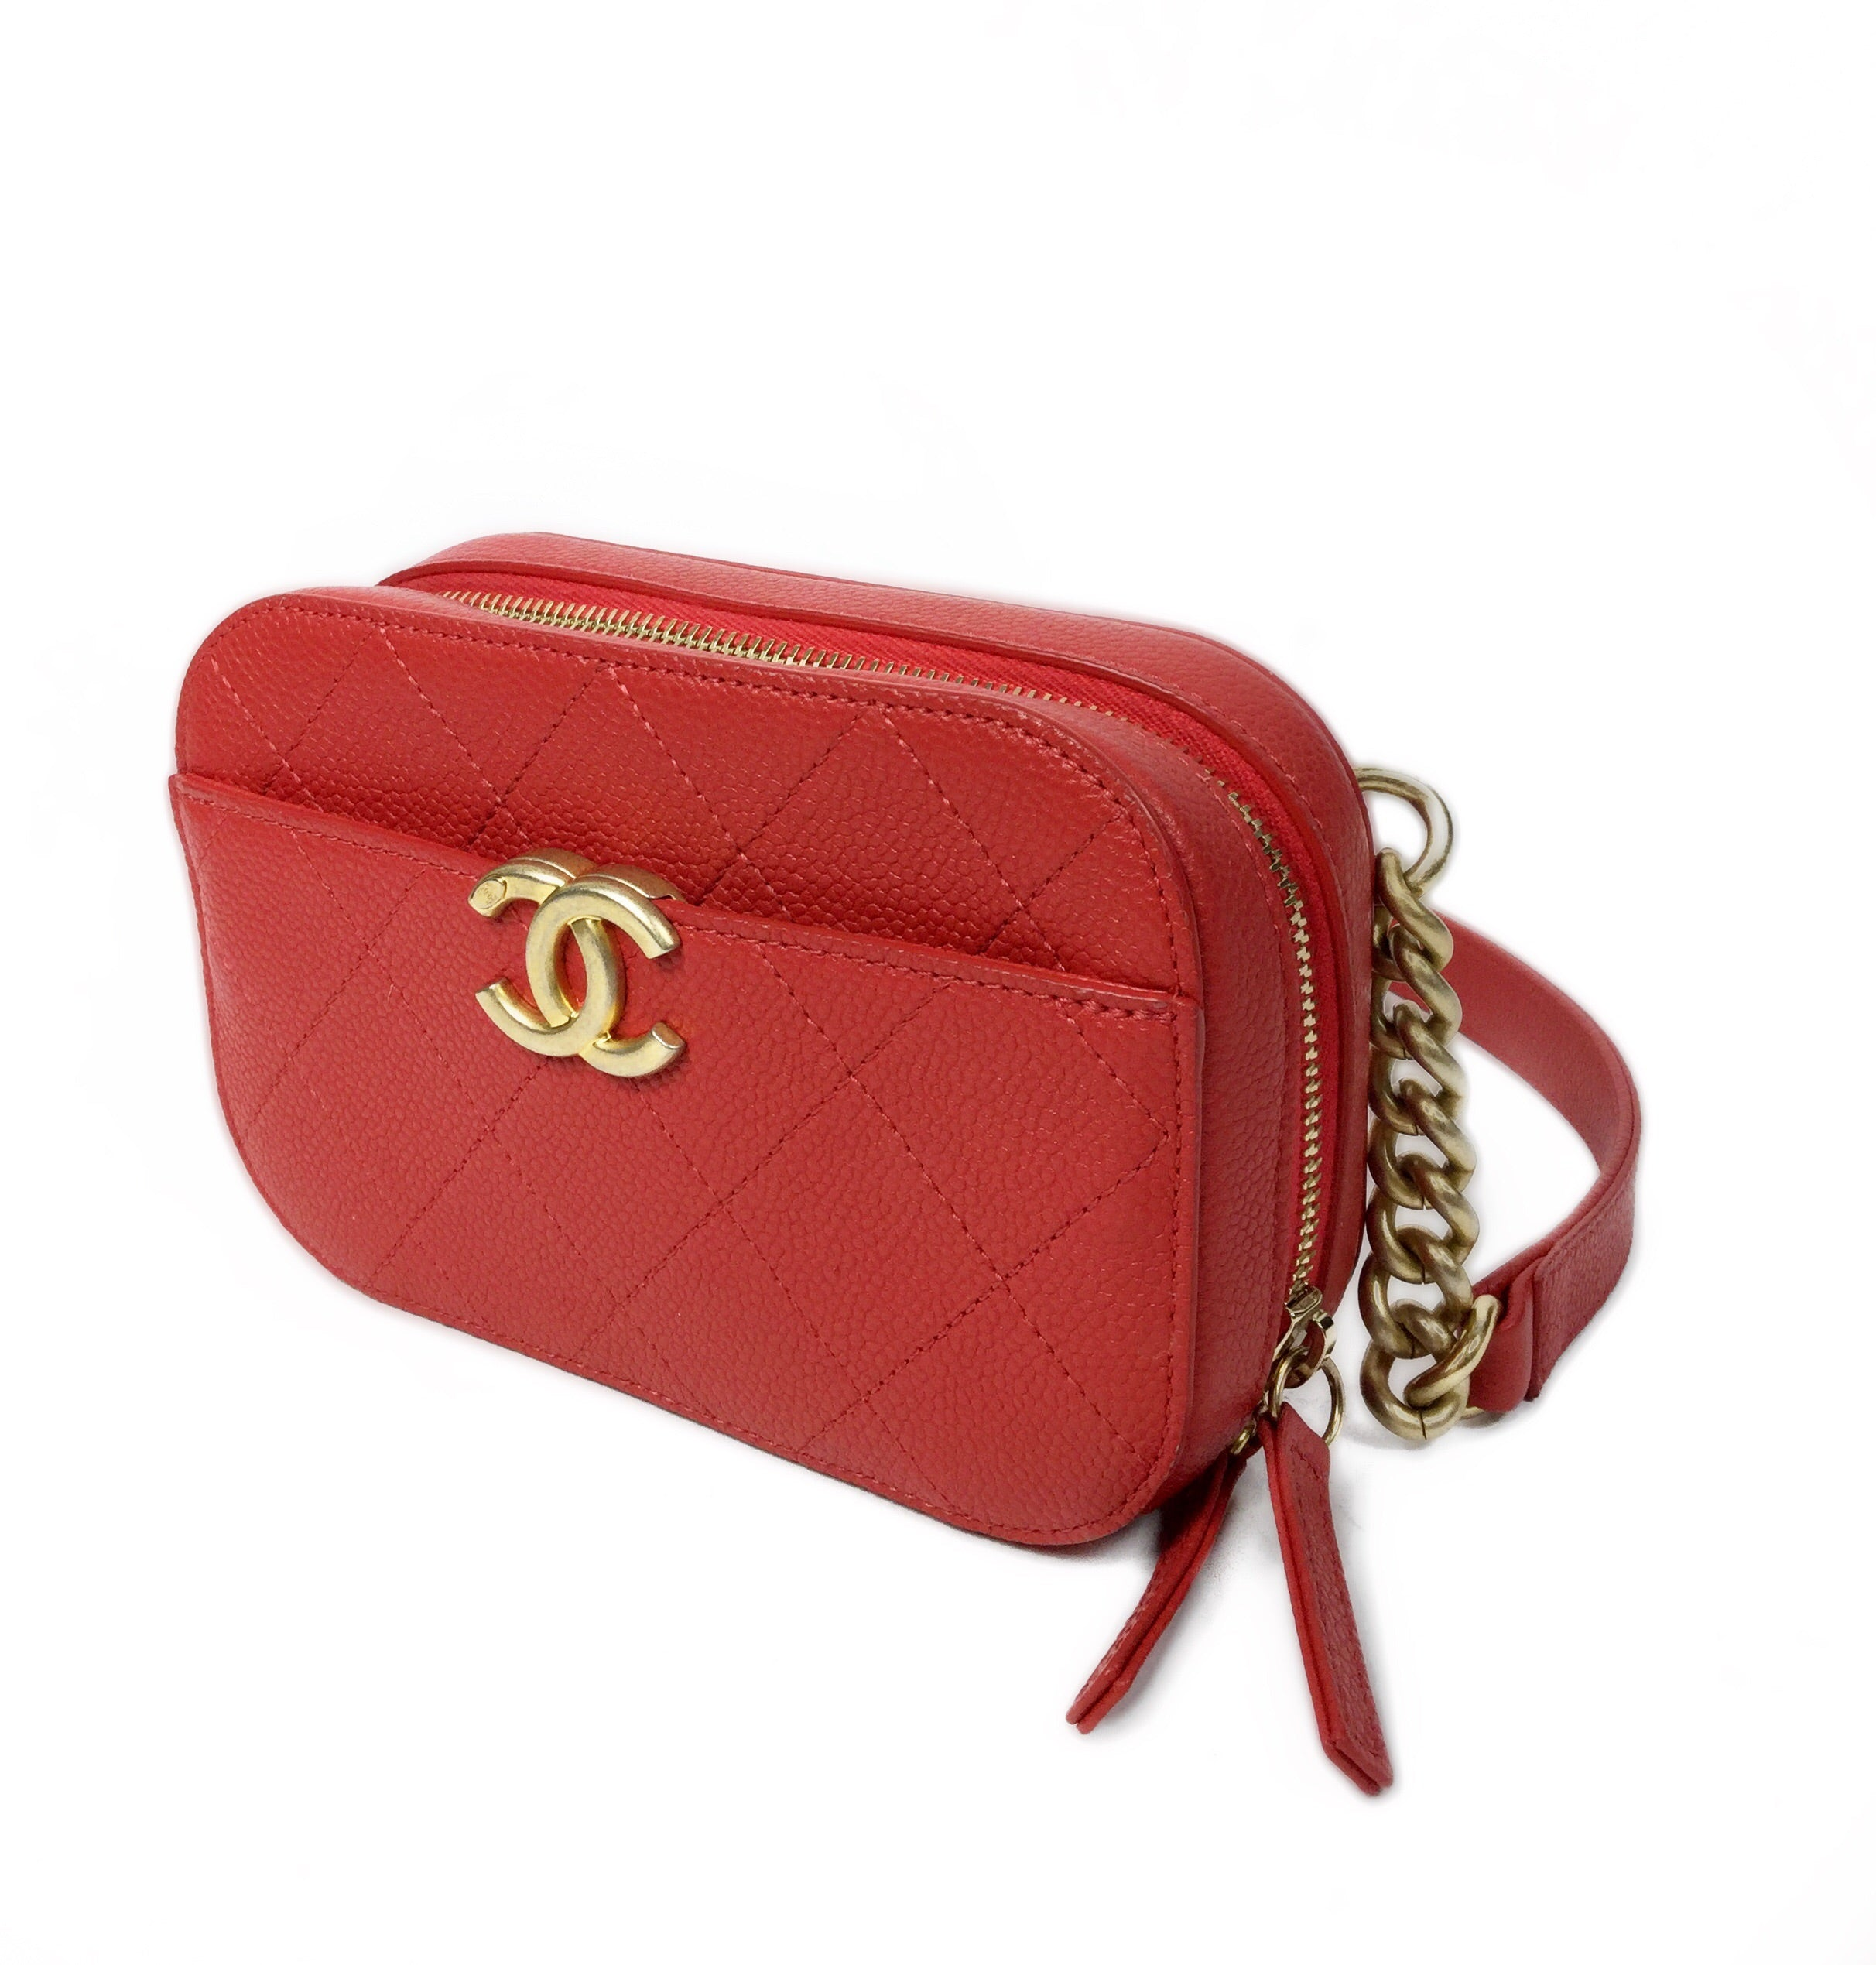 Chanel 2019 Calfskin Belt Bag